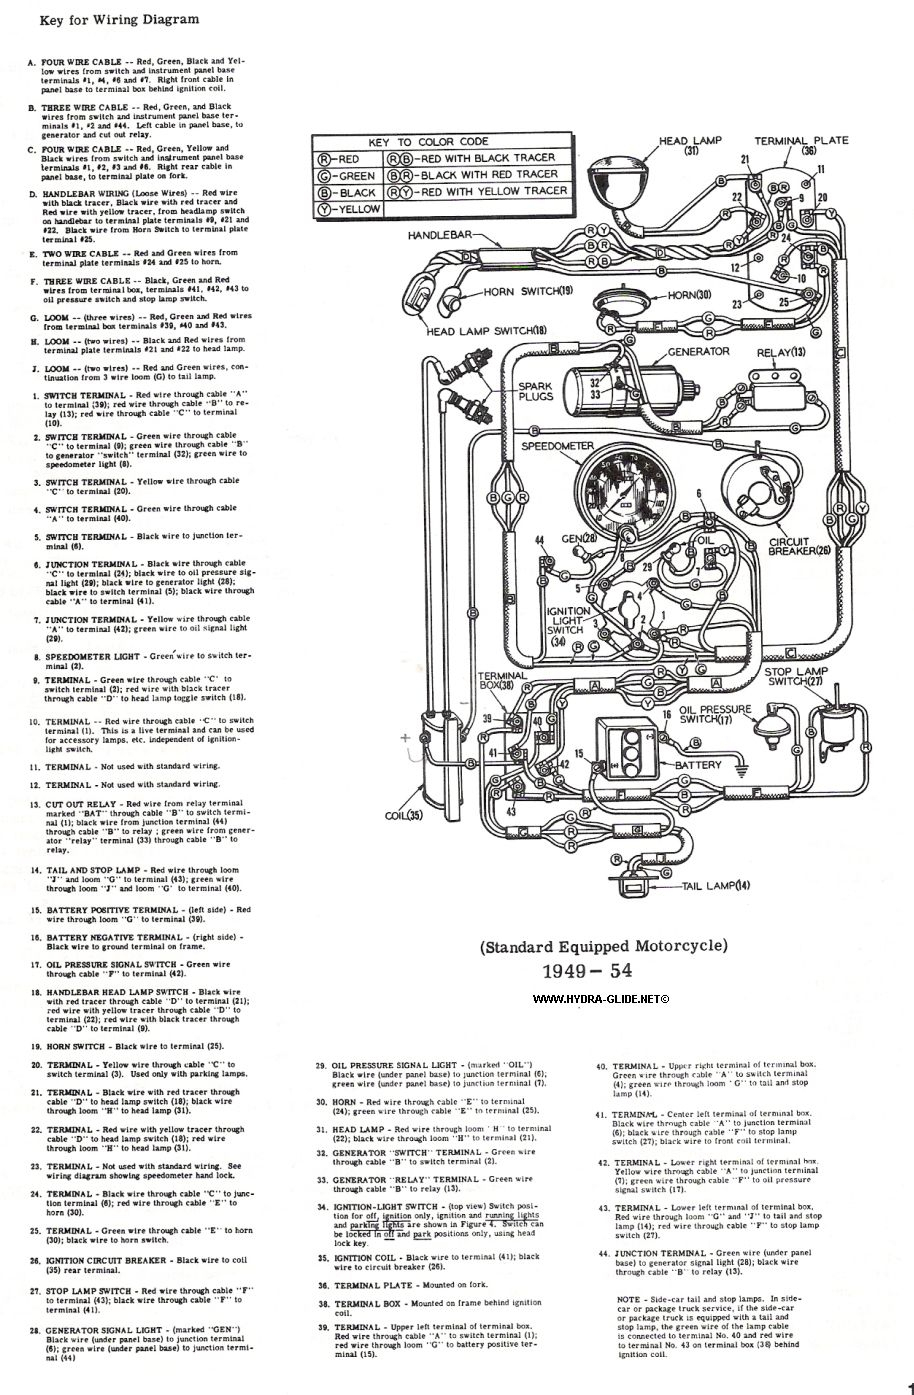 12 Volt Ignition Coil Wiring Diagram | Wiring Diagram - 12 Volt Ignition Coil Wiring Diagram